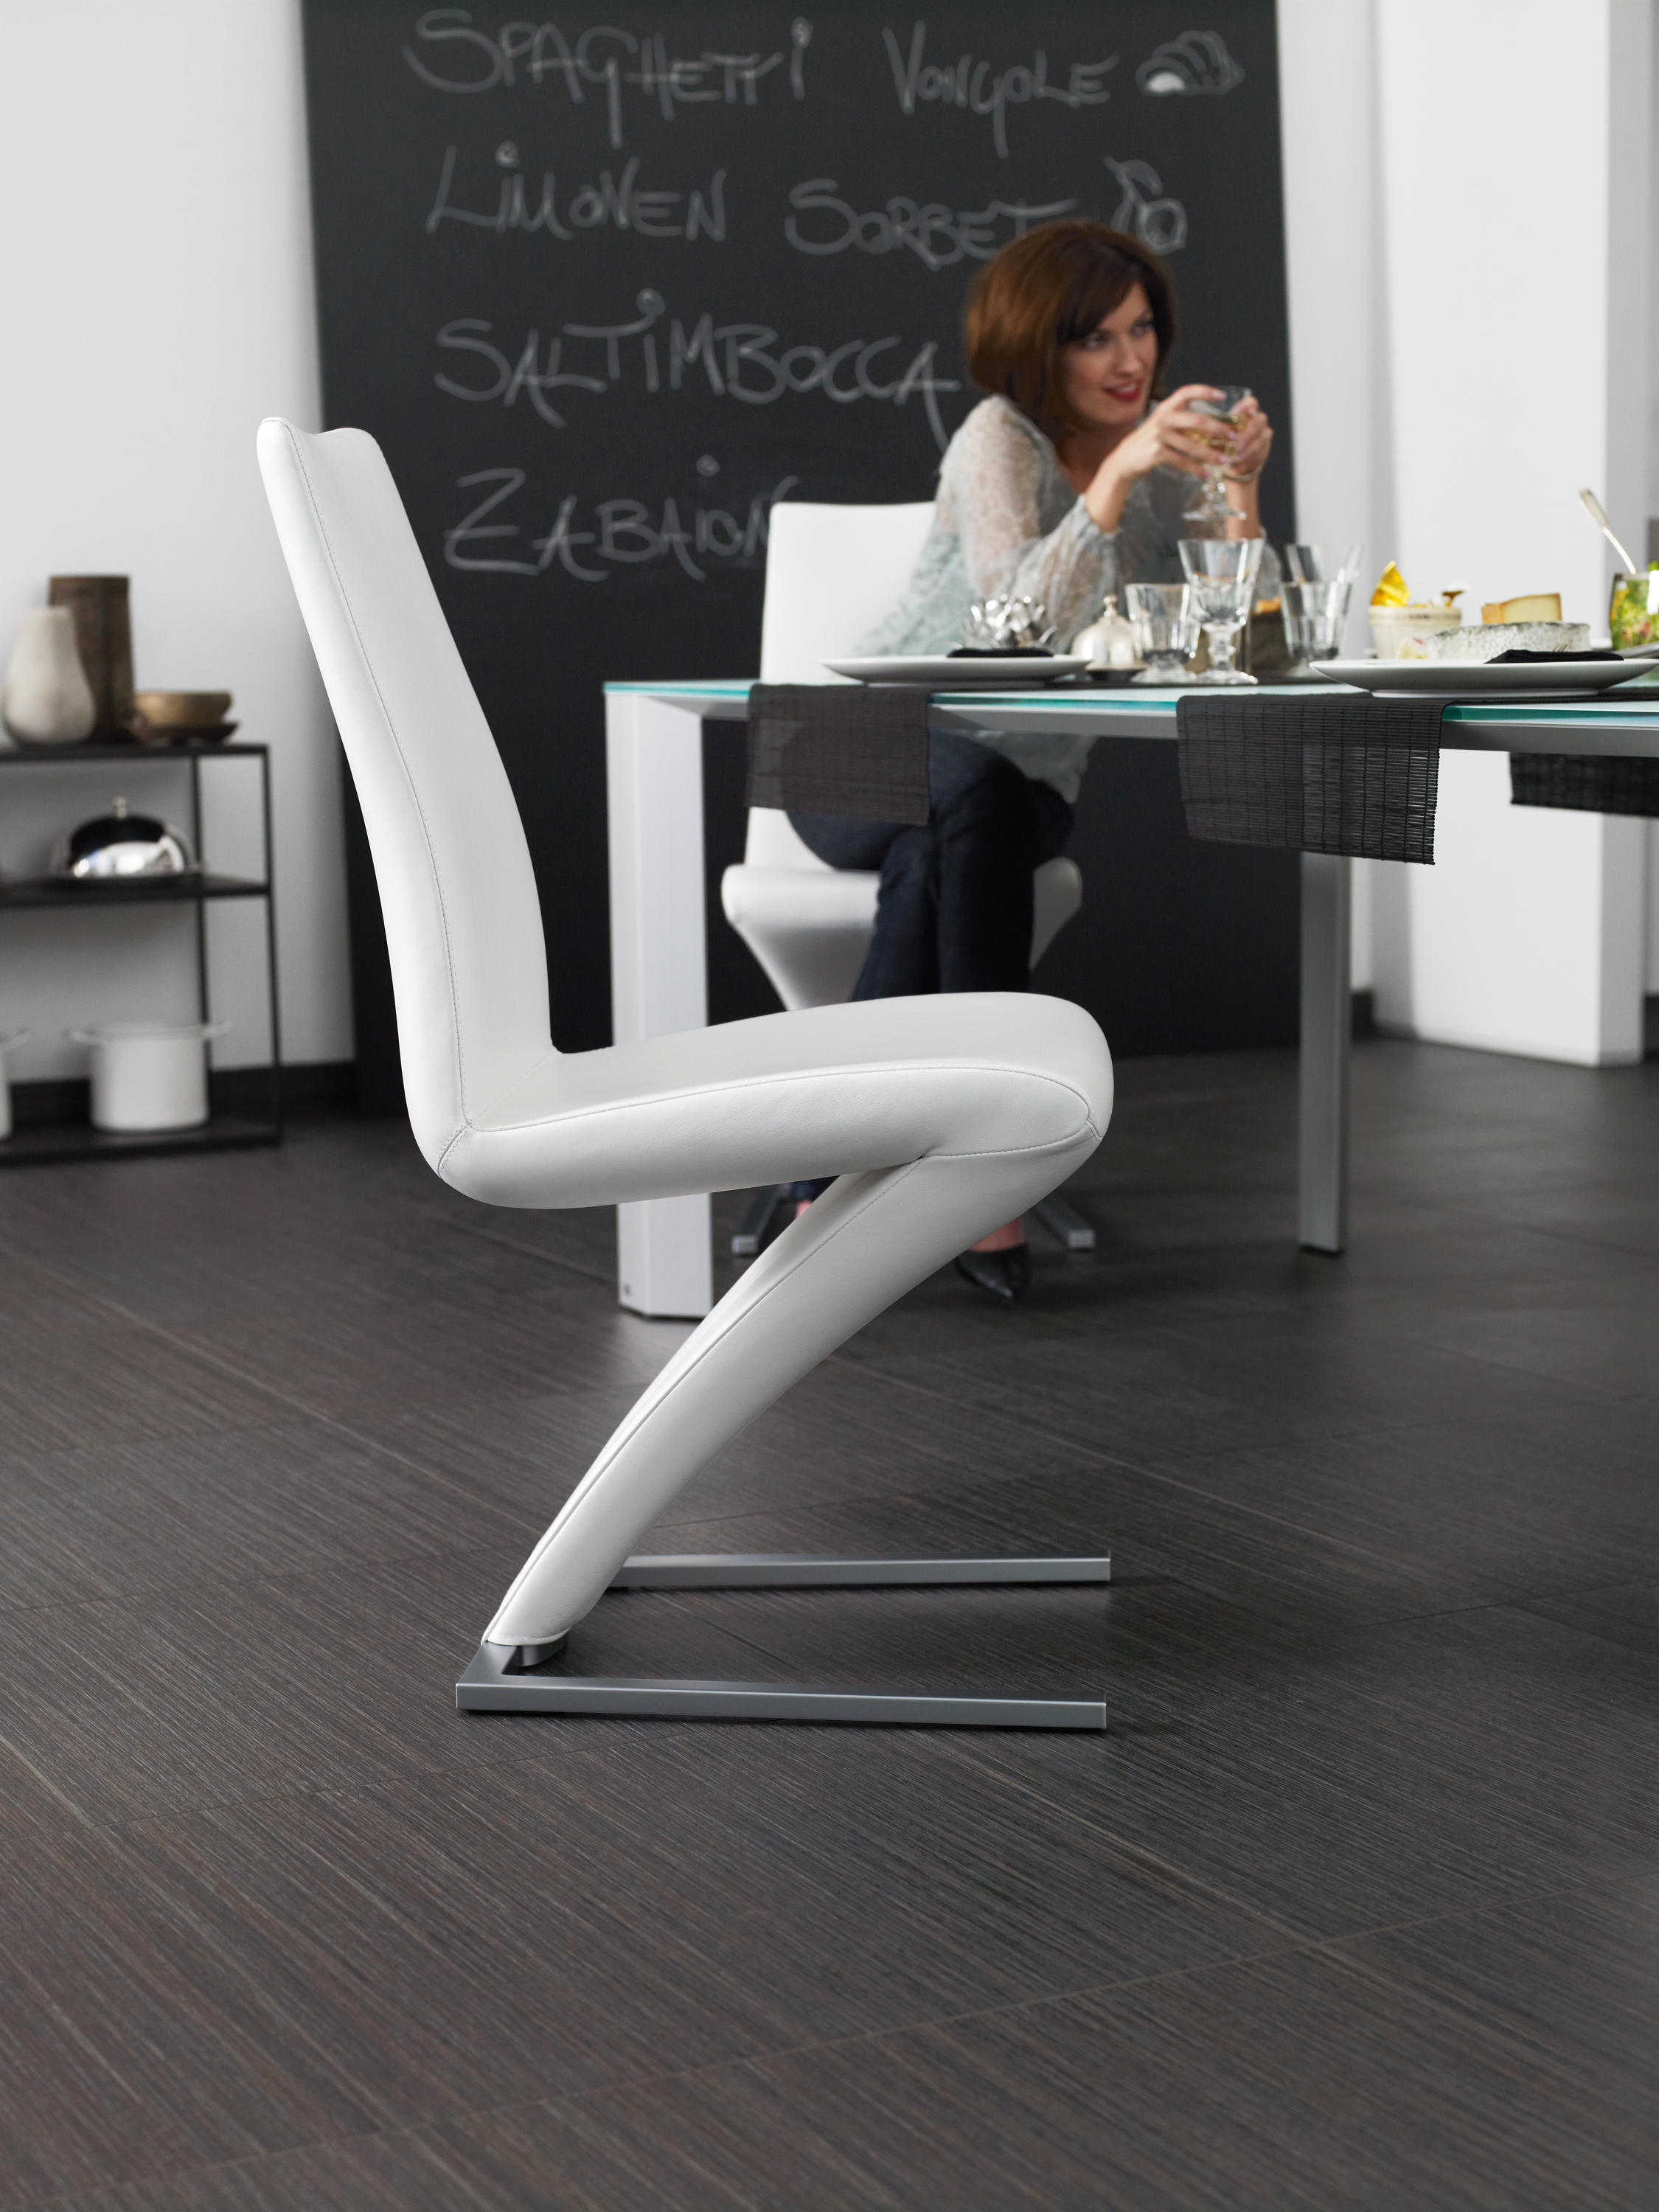 rolf benz 7800 visitors chairs side chairs from rolf. Black Bedroom Furniture Sets. Home Design Ideas